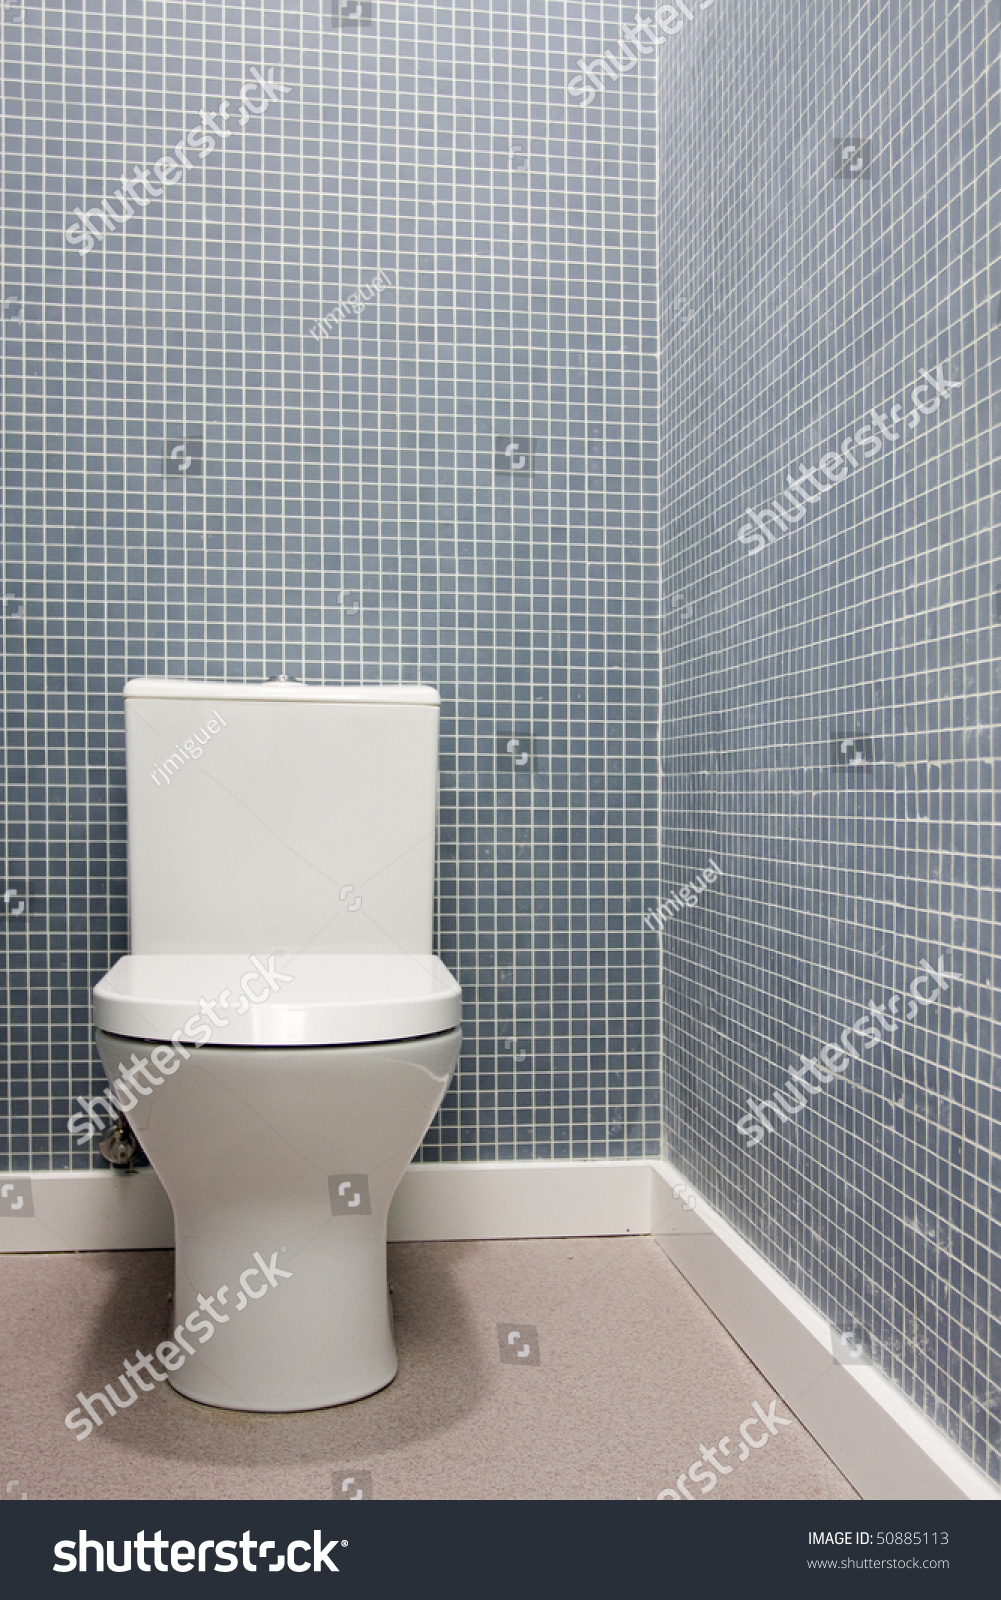 Simple Clean White Toilet Bathroom Stock Photo (Edit Now)- Shutterstock